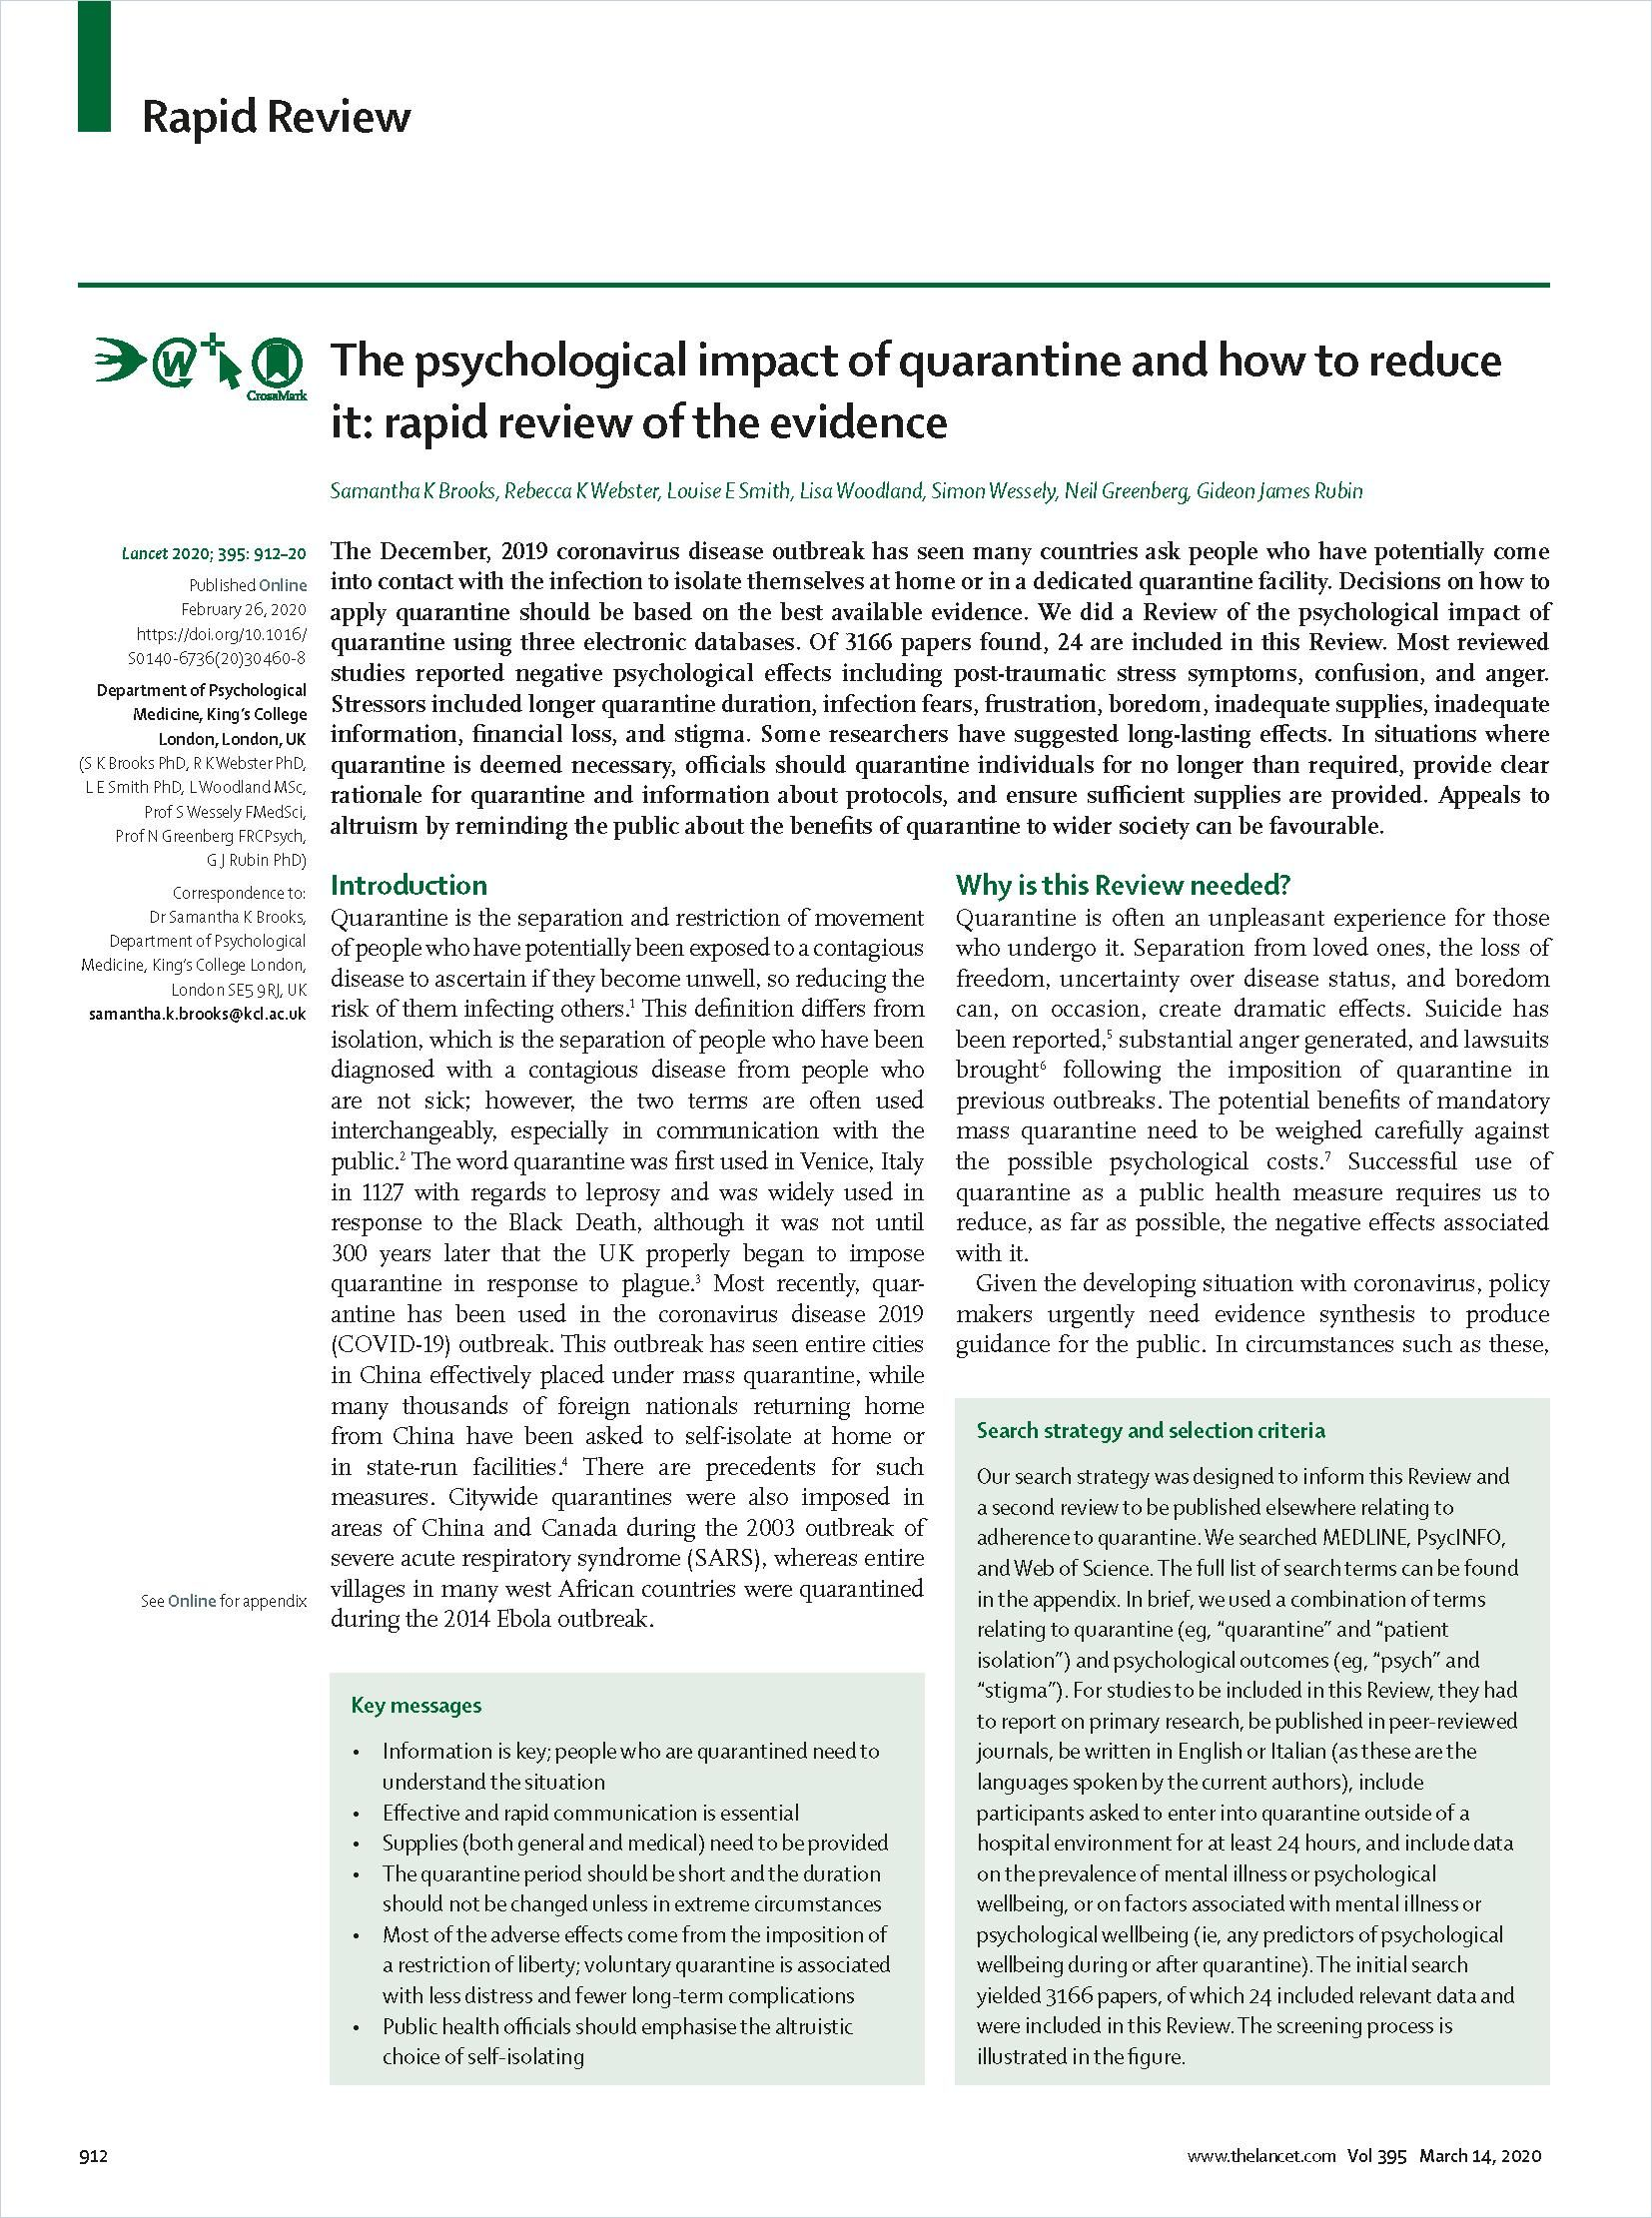 Image of: The Psychological Impact of Quarantine and How to Reduce It